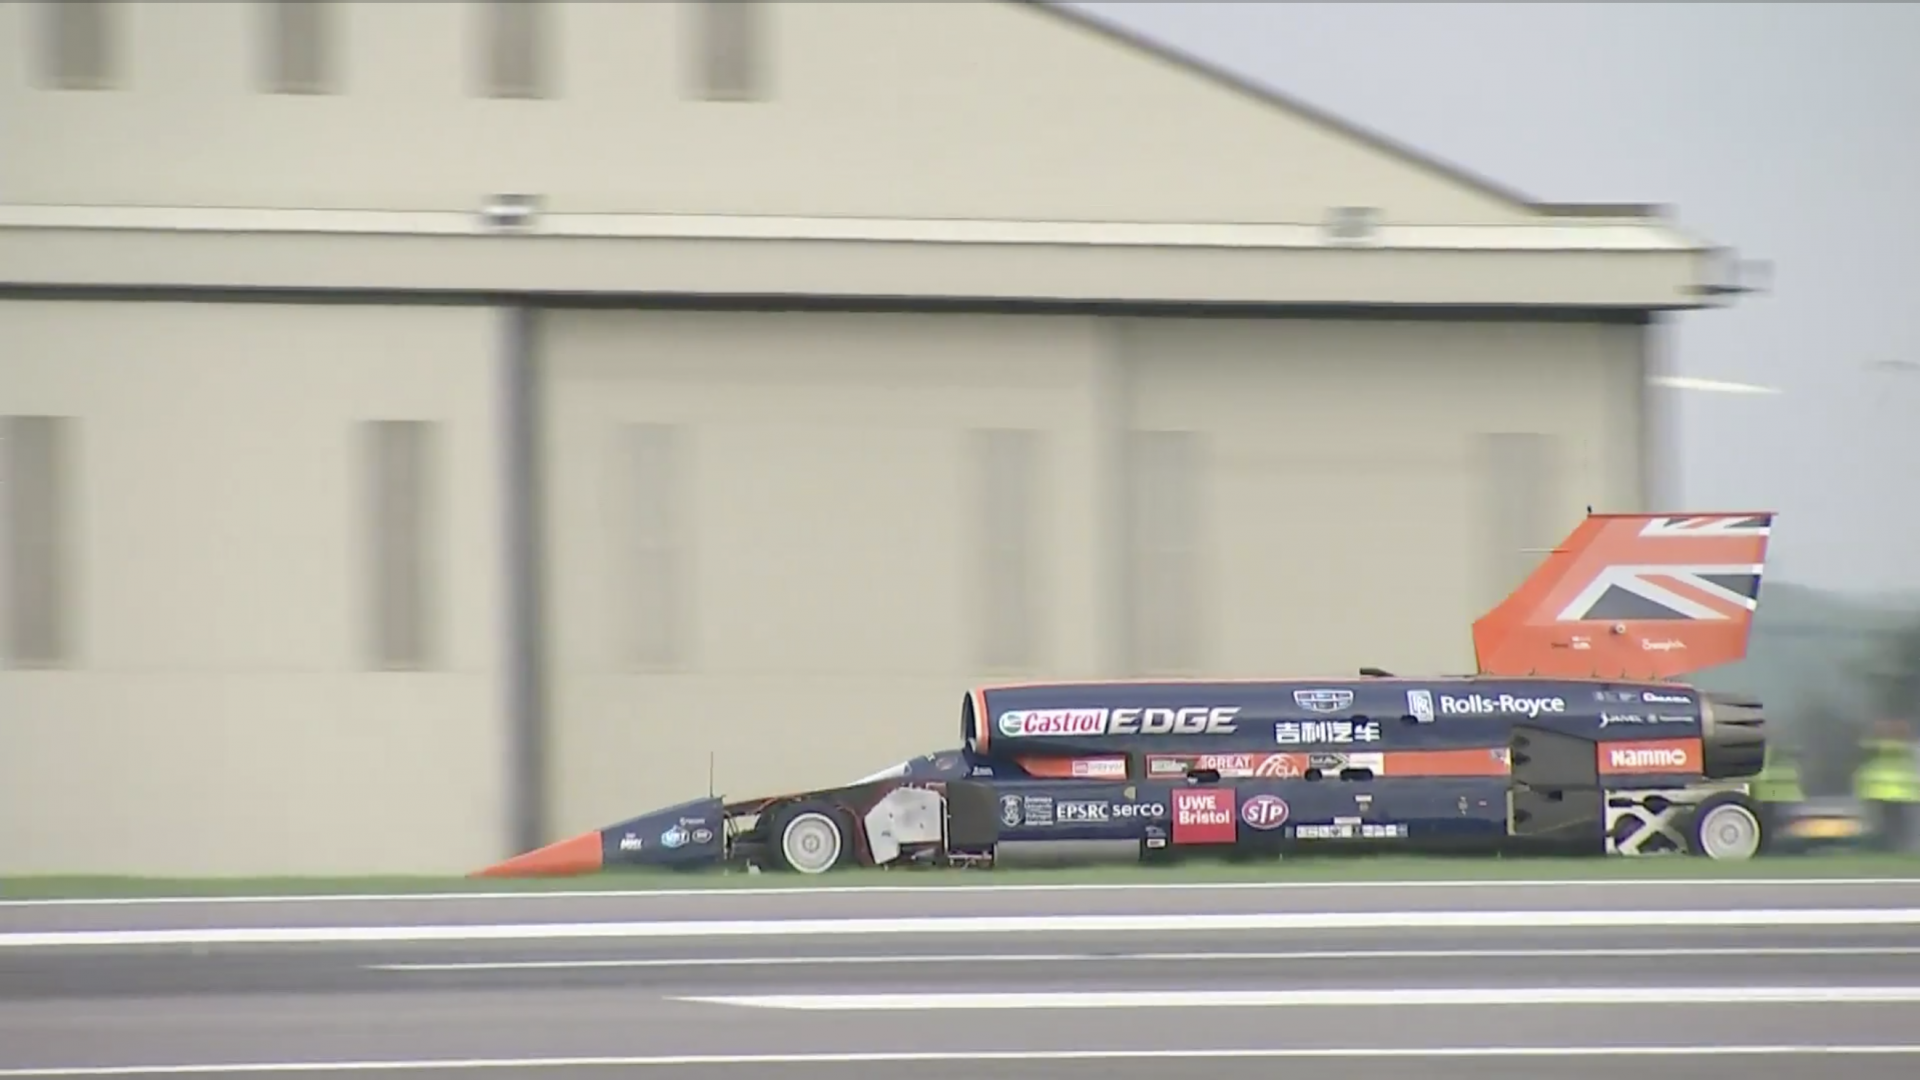 bloodhound car attempts to beat land speed record – channel 4 news